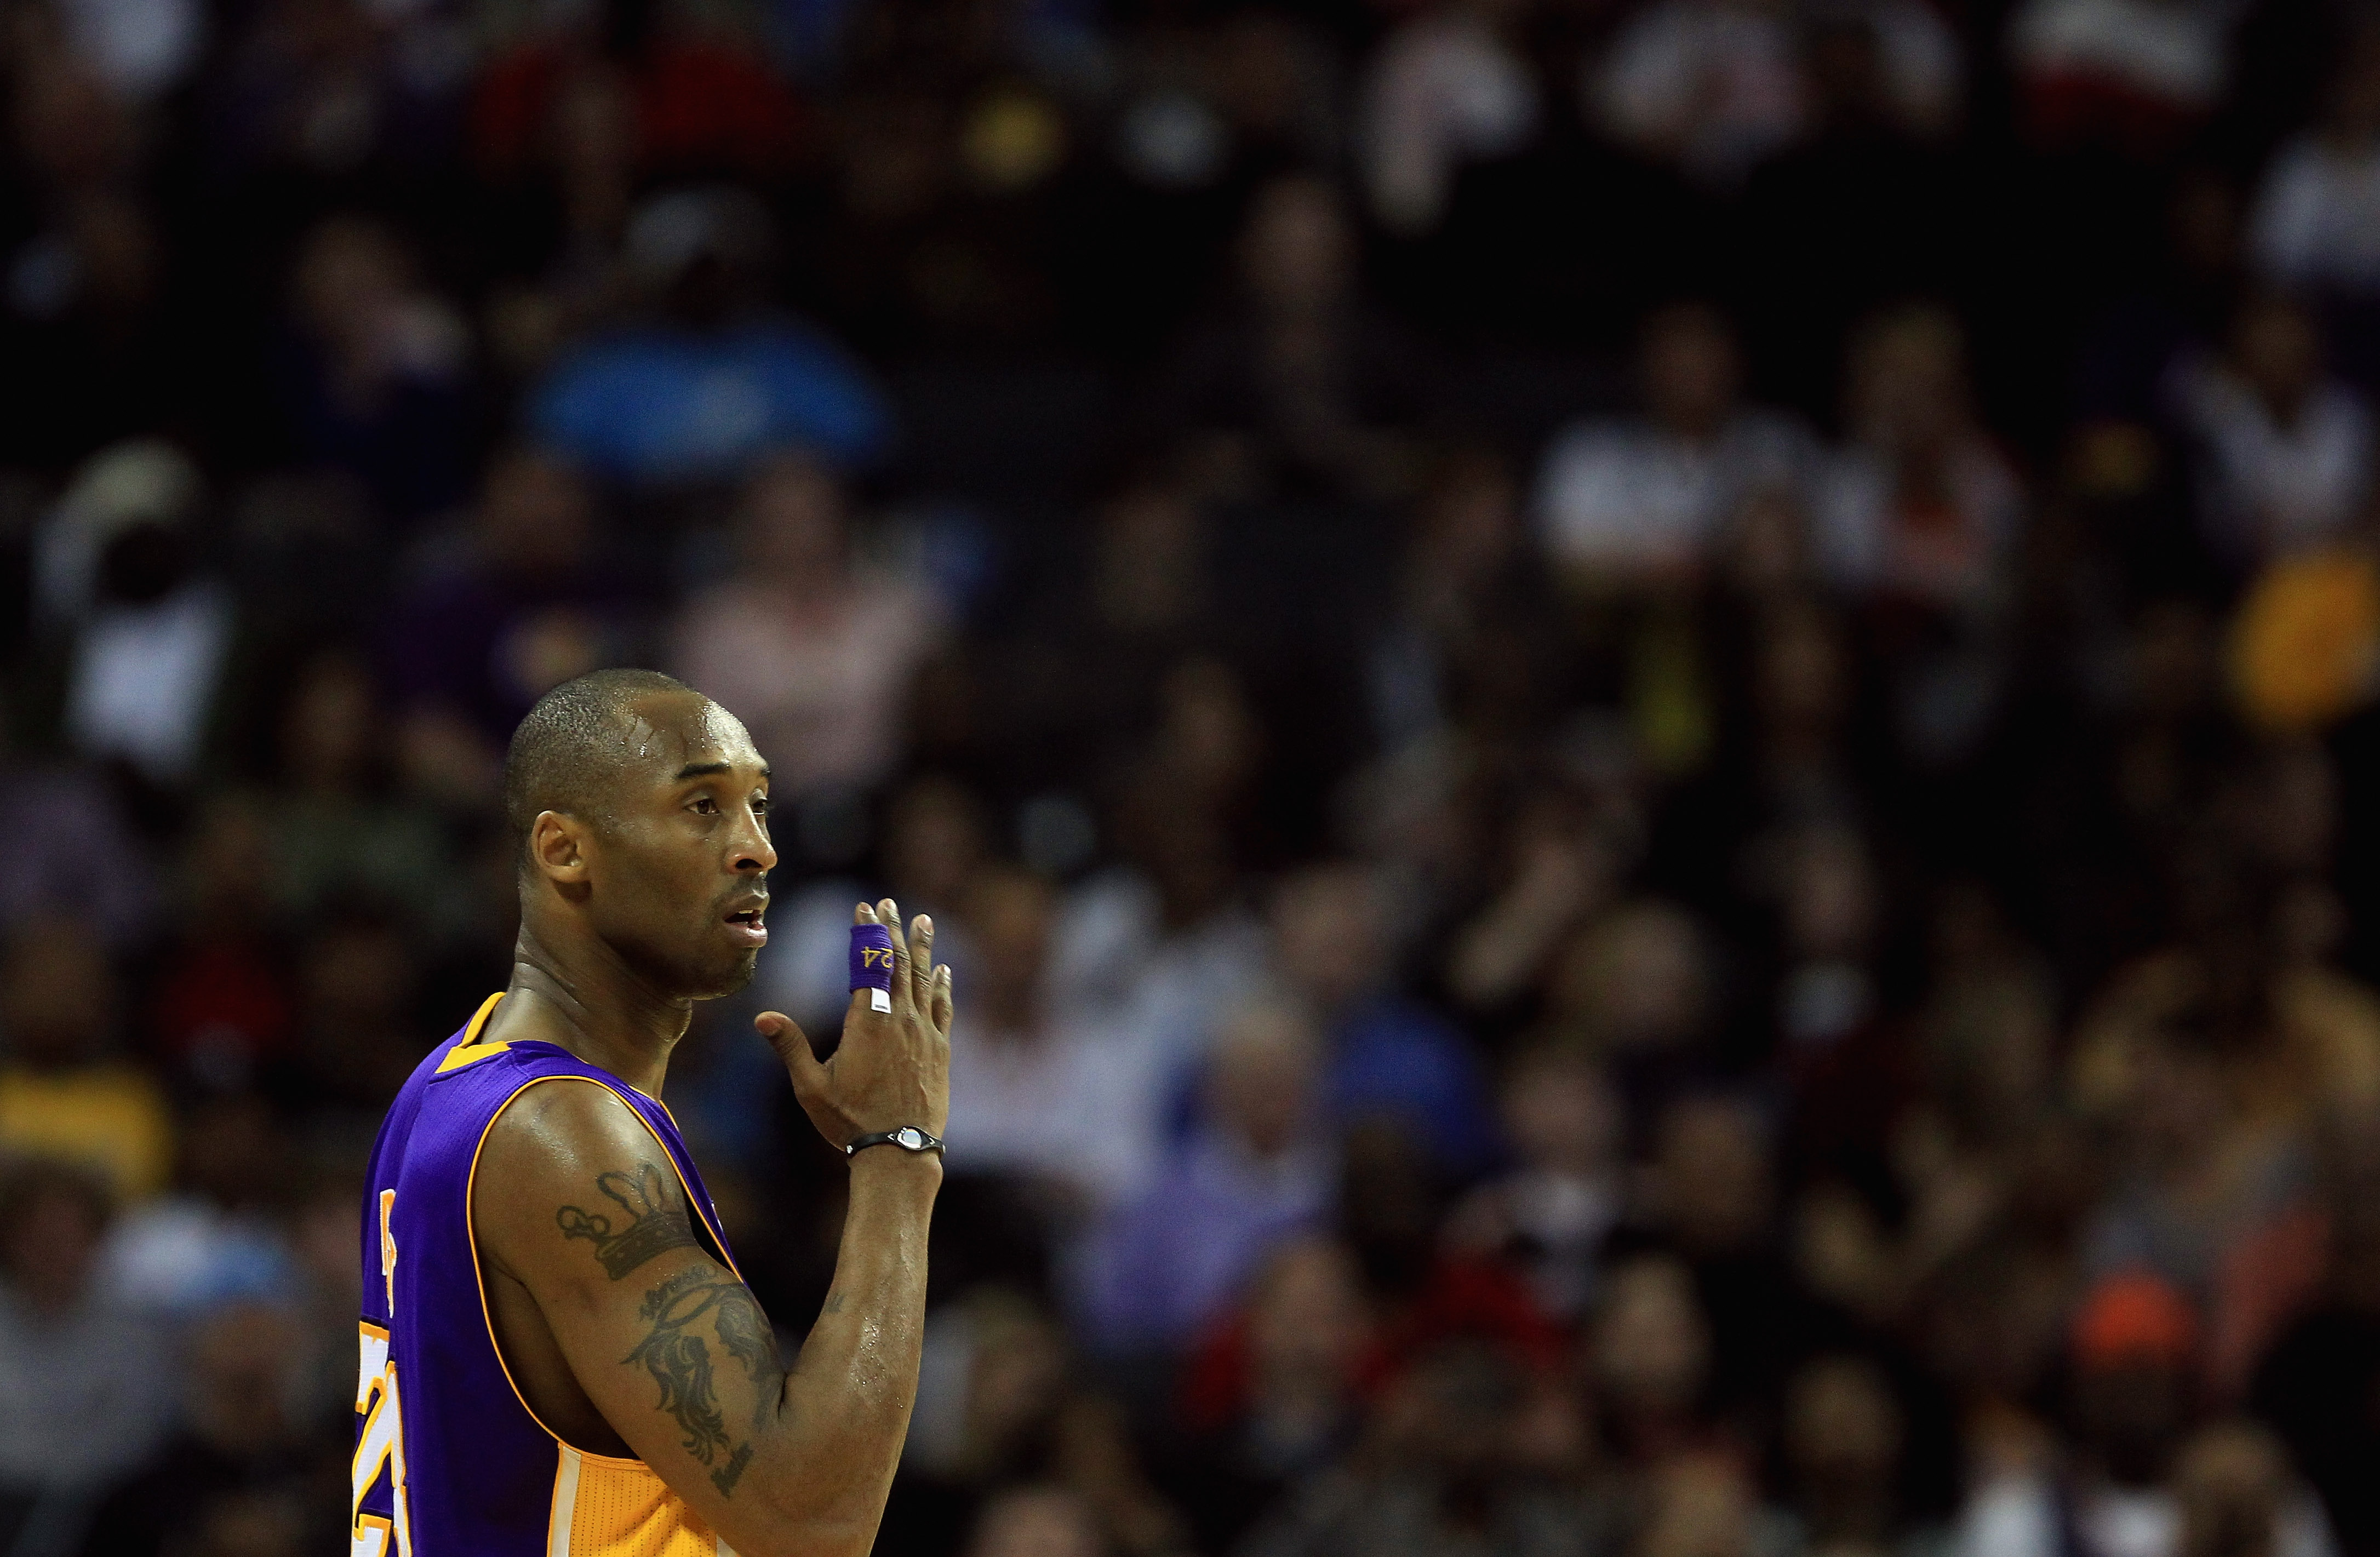 CHARLOTTE, NC - FEBRUARY 14:  Kobe Bryant #24 of the Los Angeles Lakers reacts to his bench against the Charlotte Bobcats during their game at Time Warner Cable Arena on February 14, 2011 in Charlotte, North Carolina. NOTE TO USER: User expressly acknowle